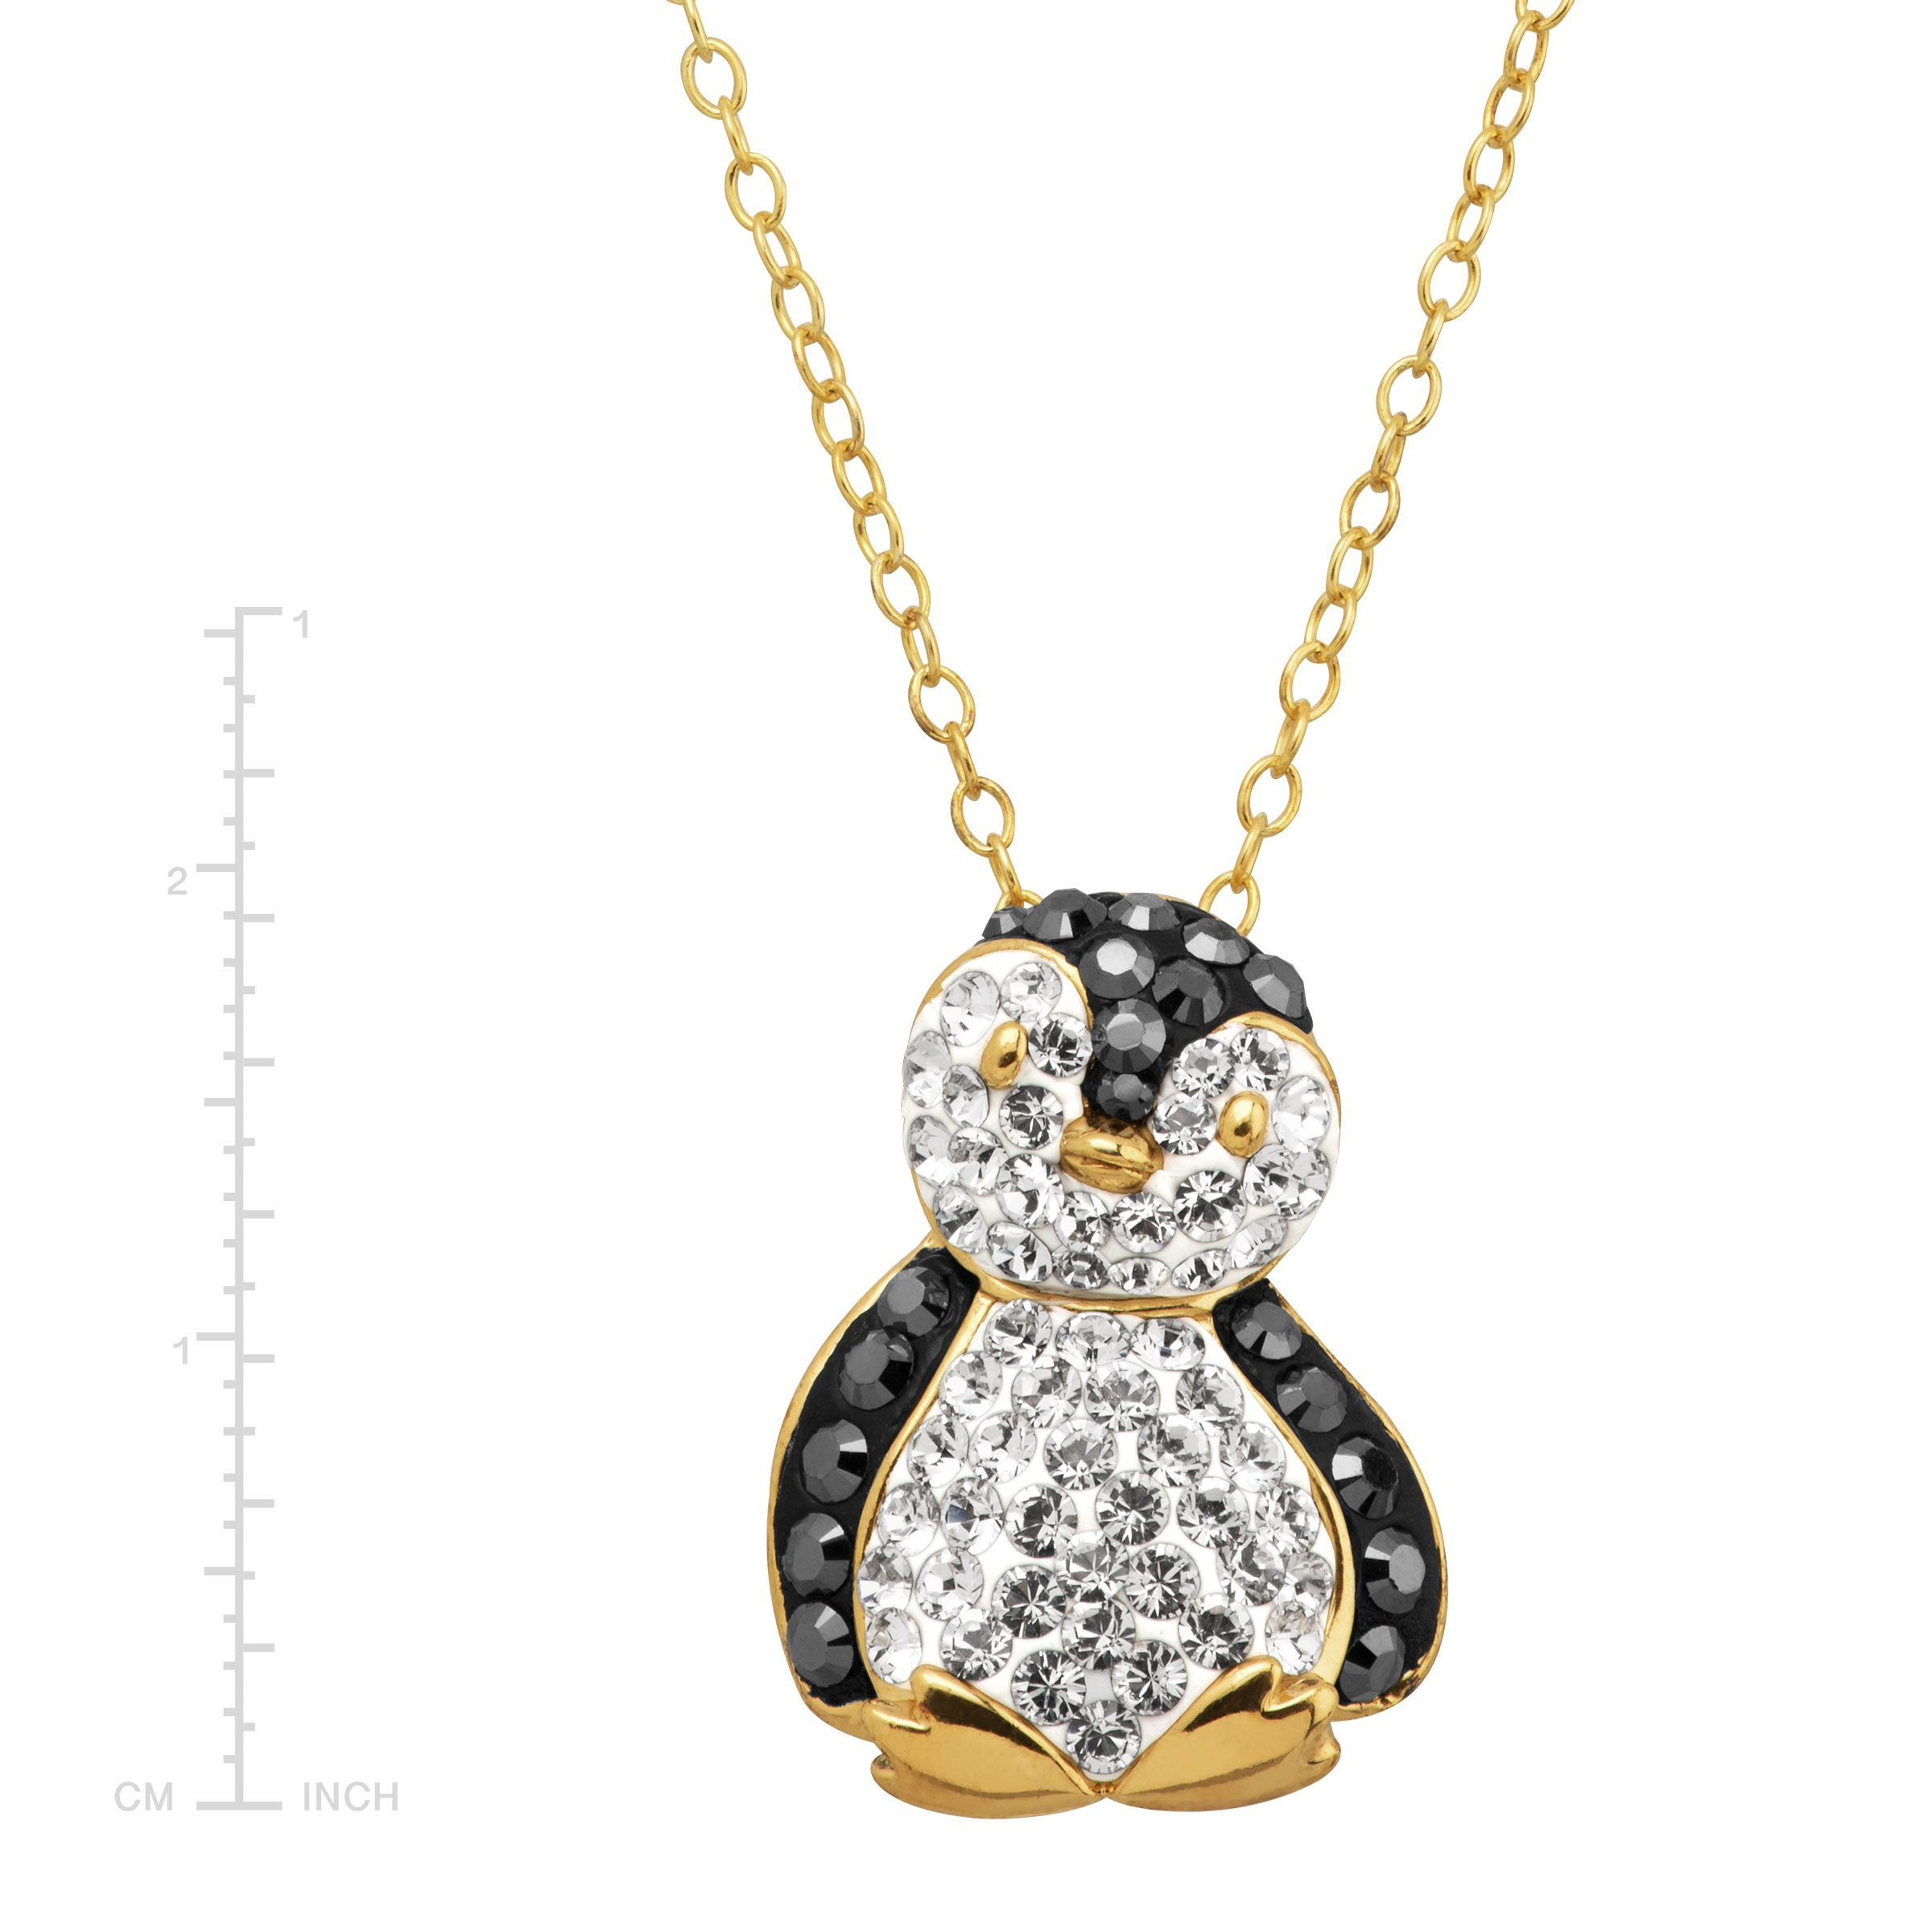 Penguin pendant with crystals in 18k gold plated silver 729367644527 penguin pendant with crystals in 18k gold plated silver aloadofball Images